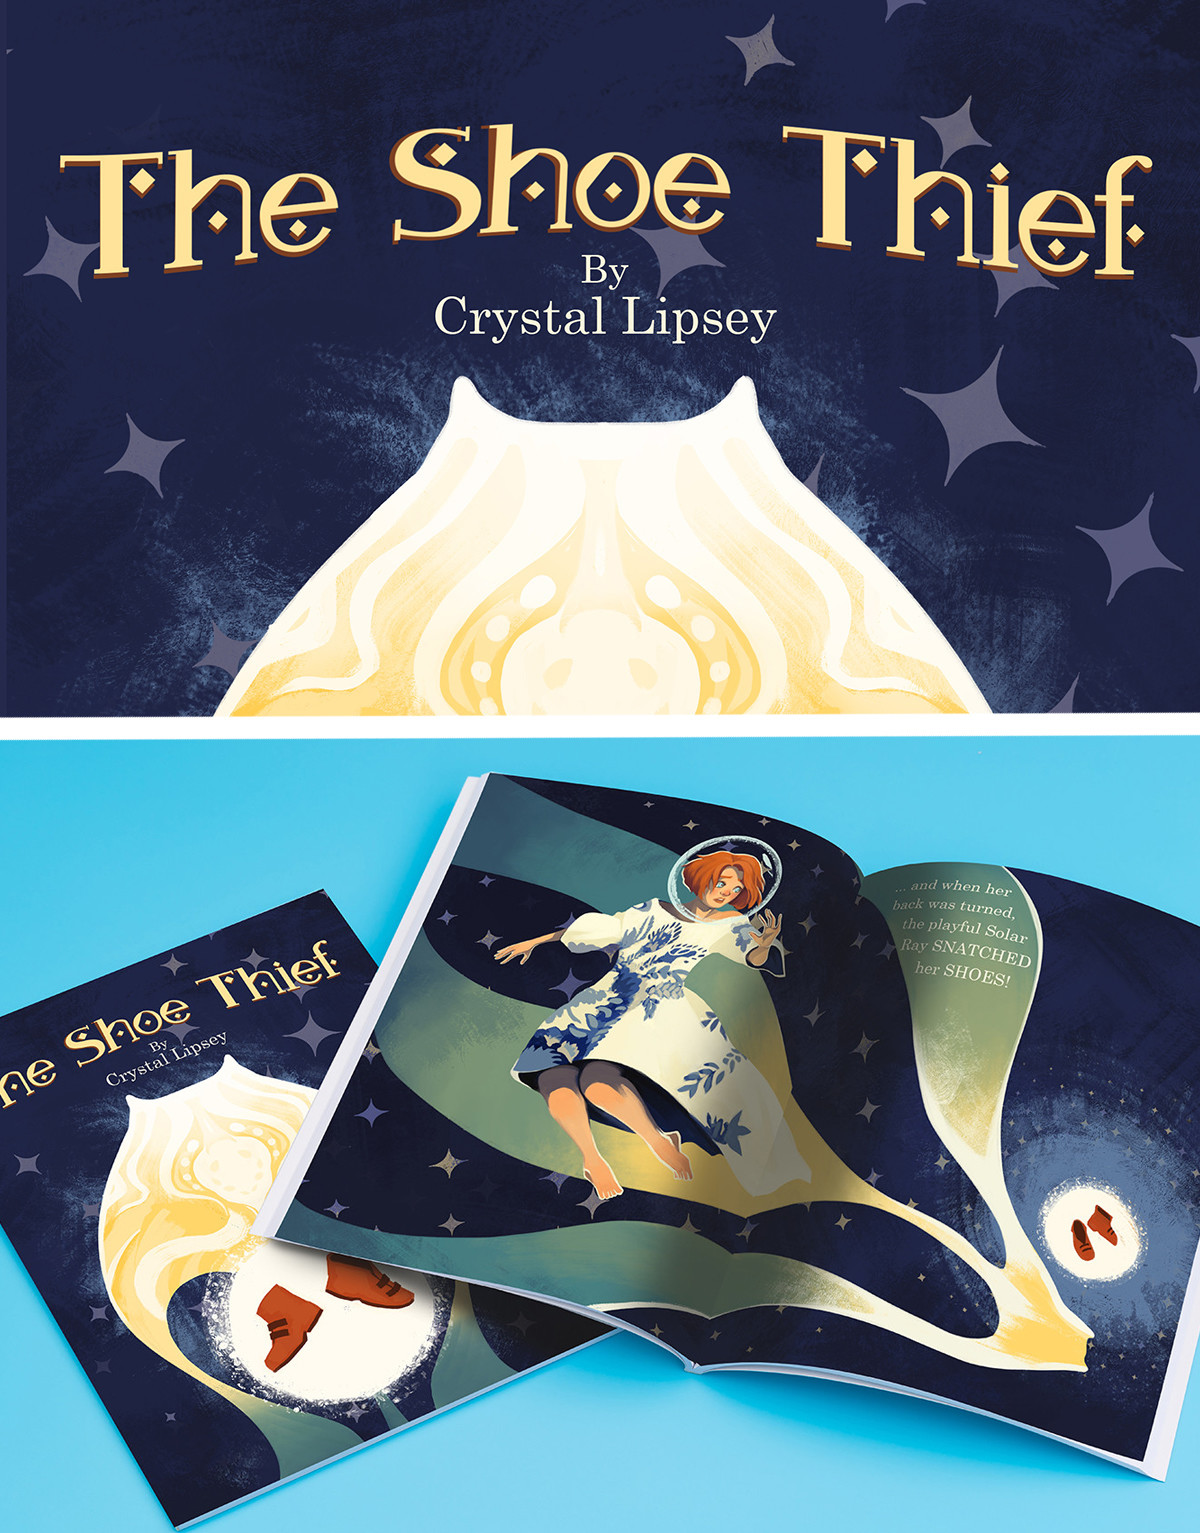 The Shoe Thief mock up